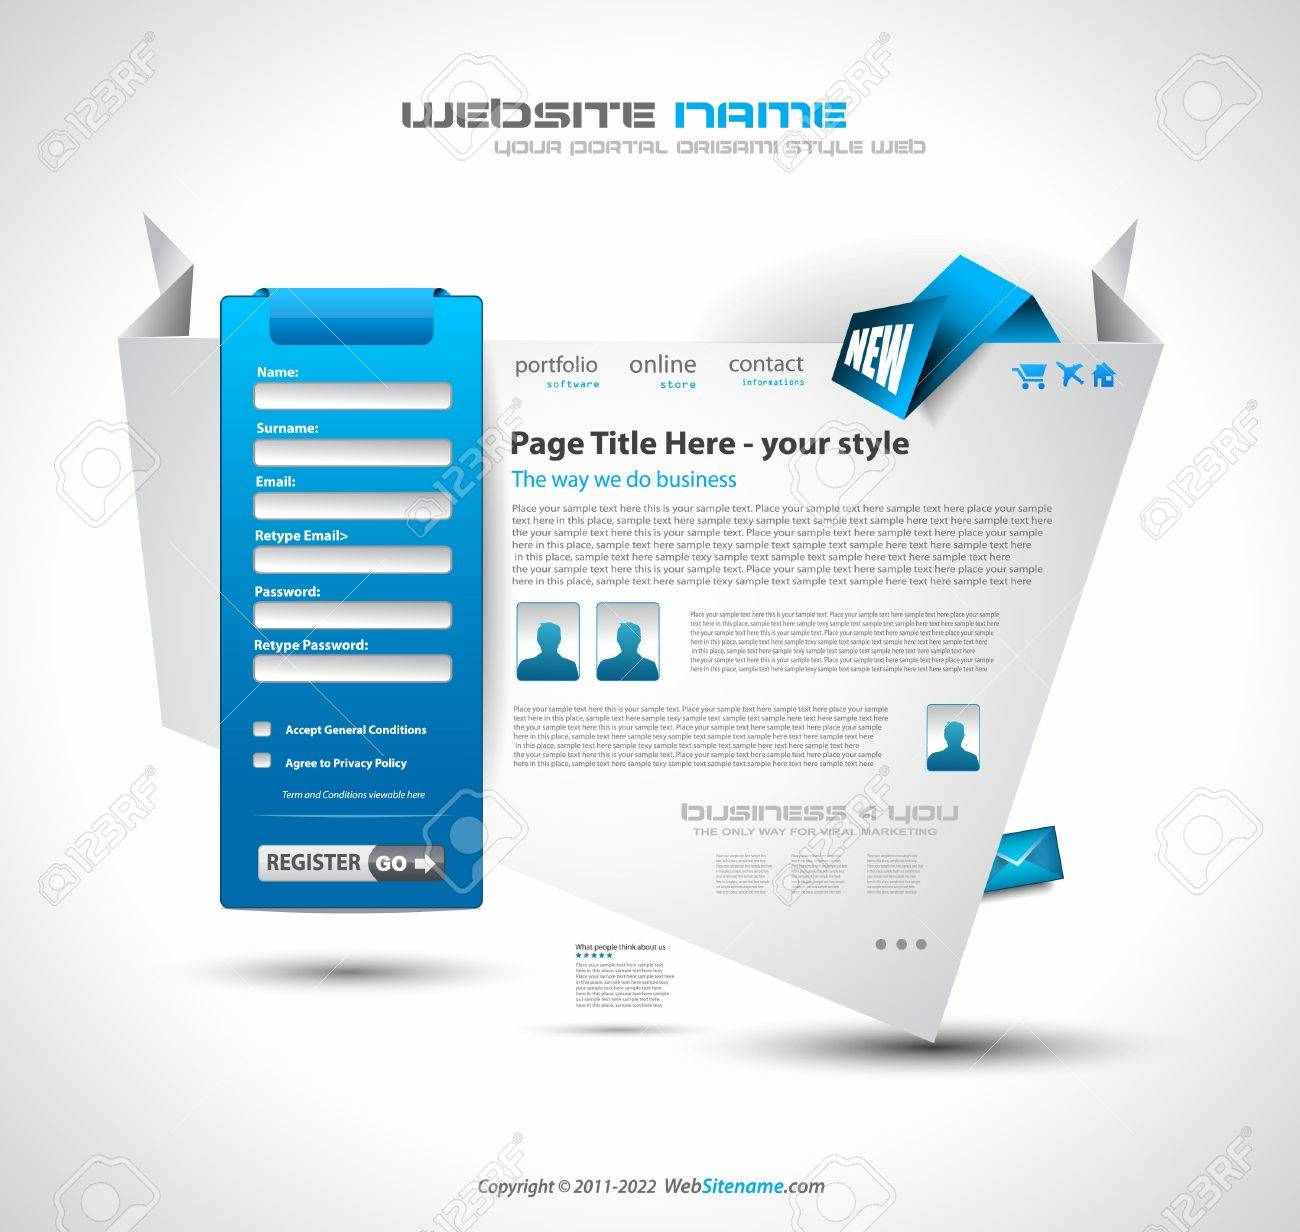 Origami Website Elegant Design For Business Presentations - Online store privacy policy template